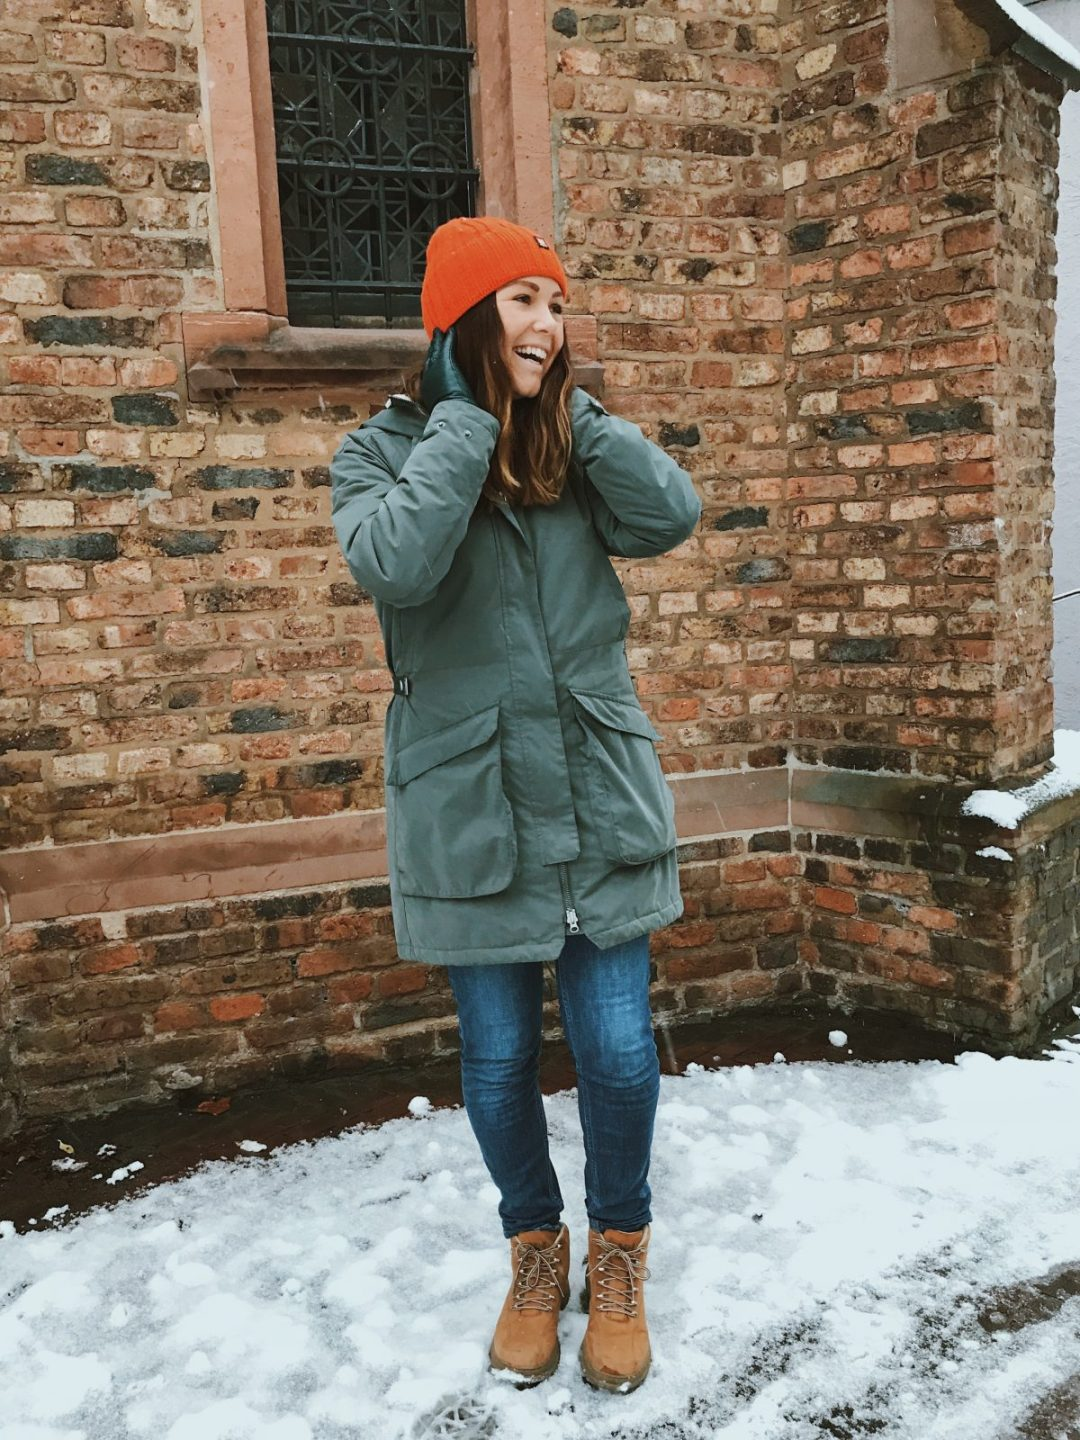 A girl standing on snow wearing hiking gear